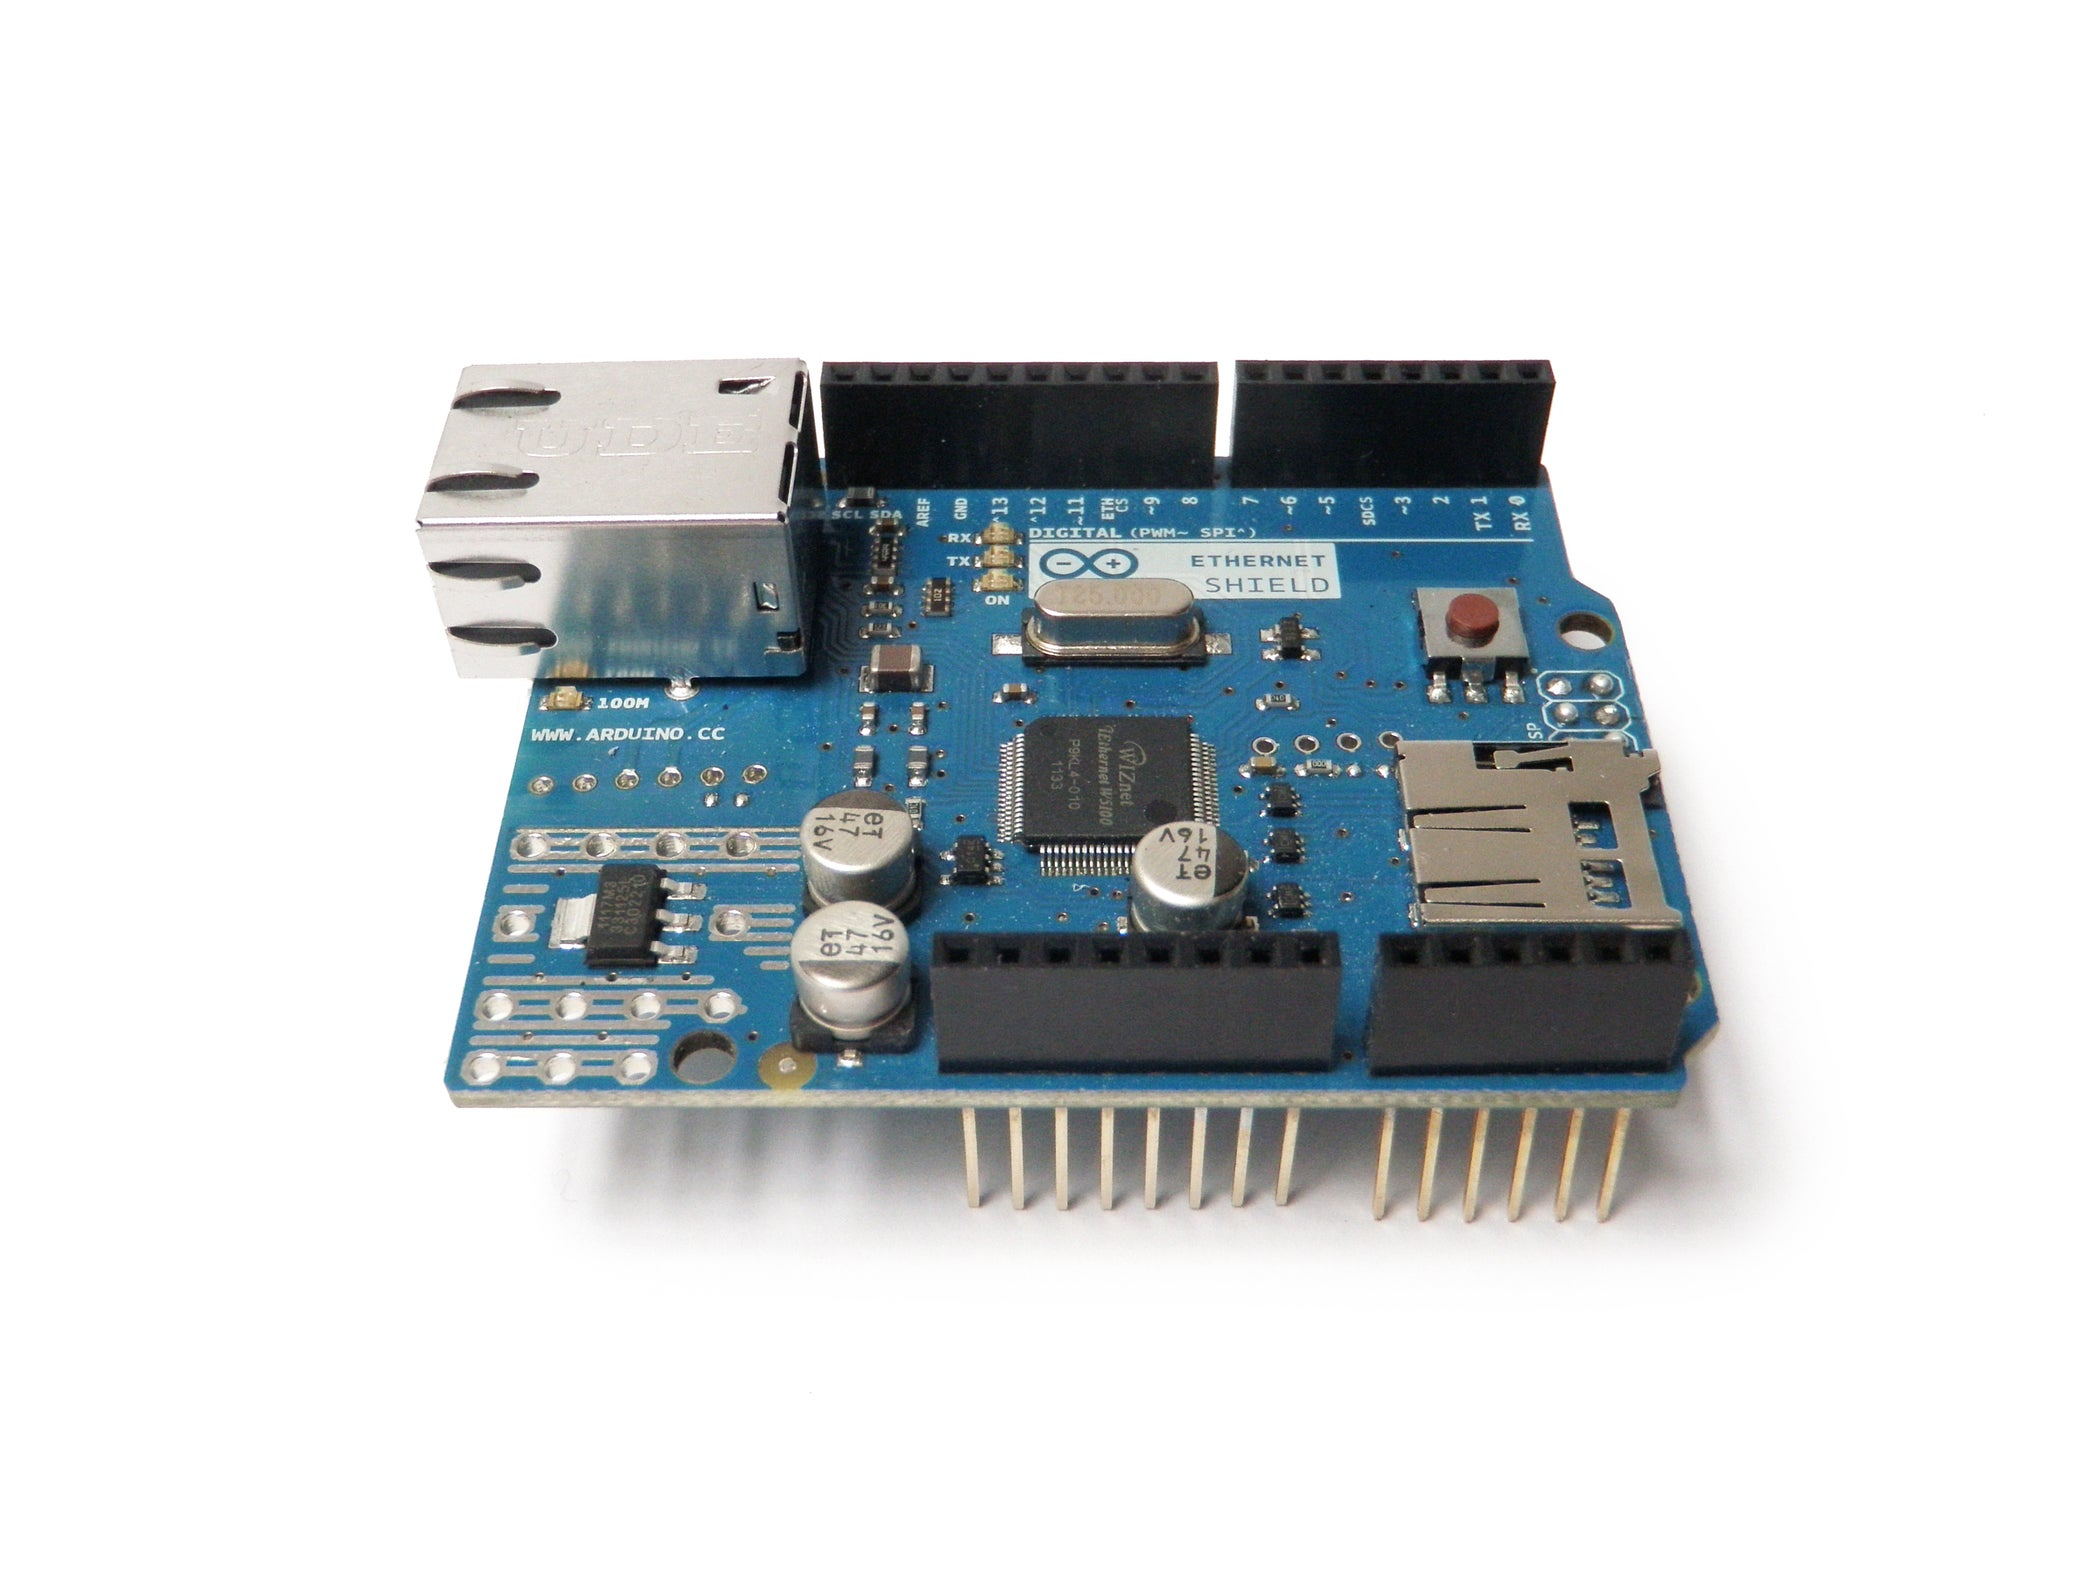 Blynk With Ethernet Shield Hanrun Hr911105a 16 32 Arduino Uno Due Pinout Tutorial